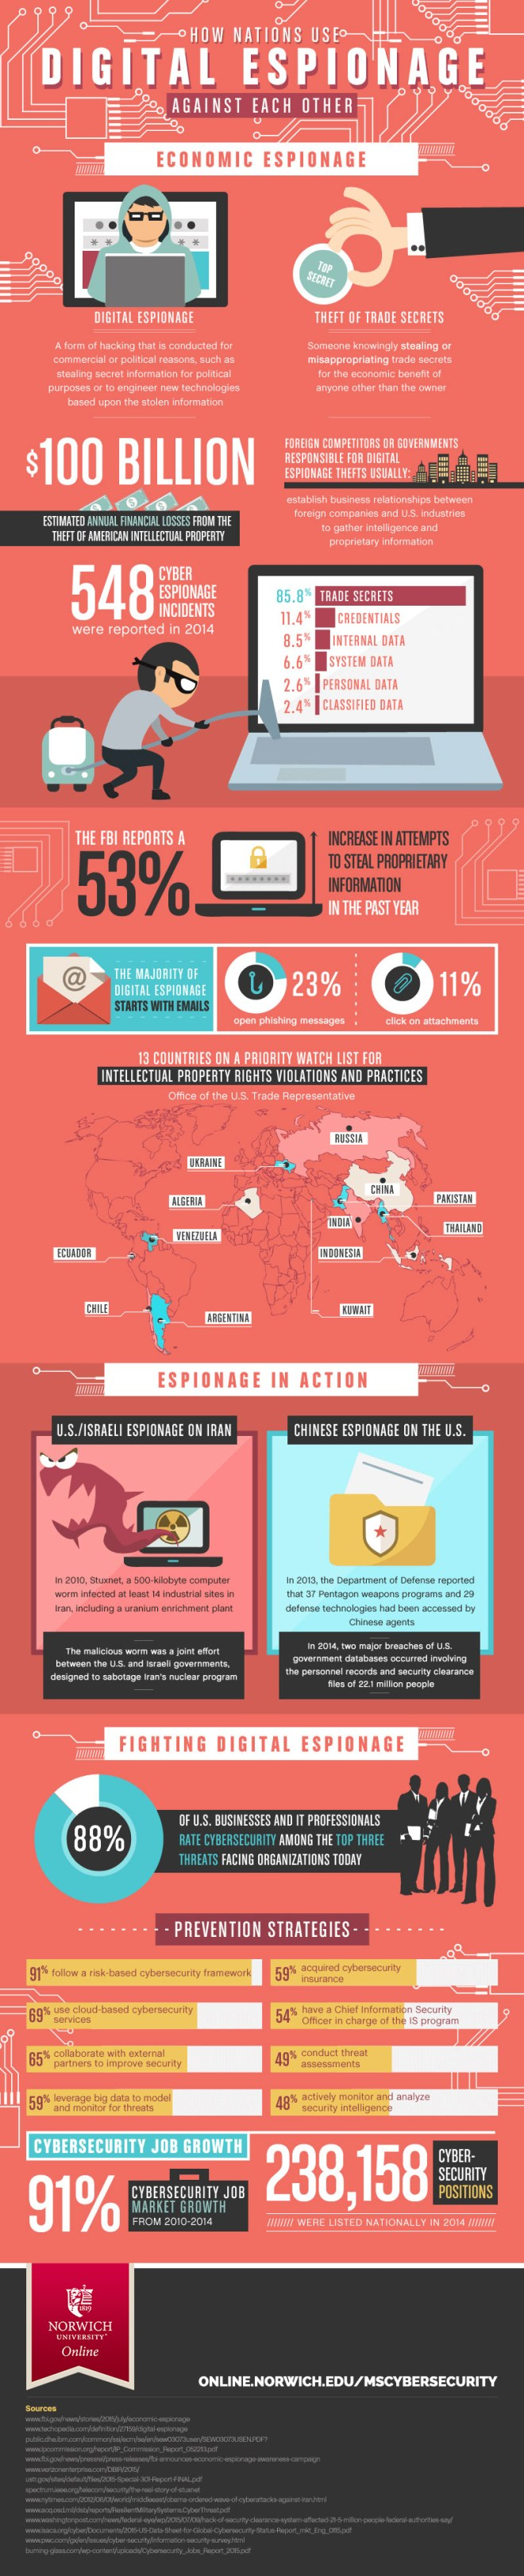 infographic about espionage